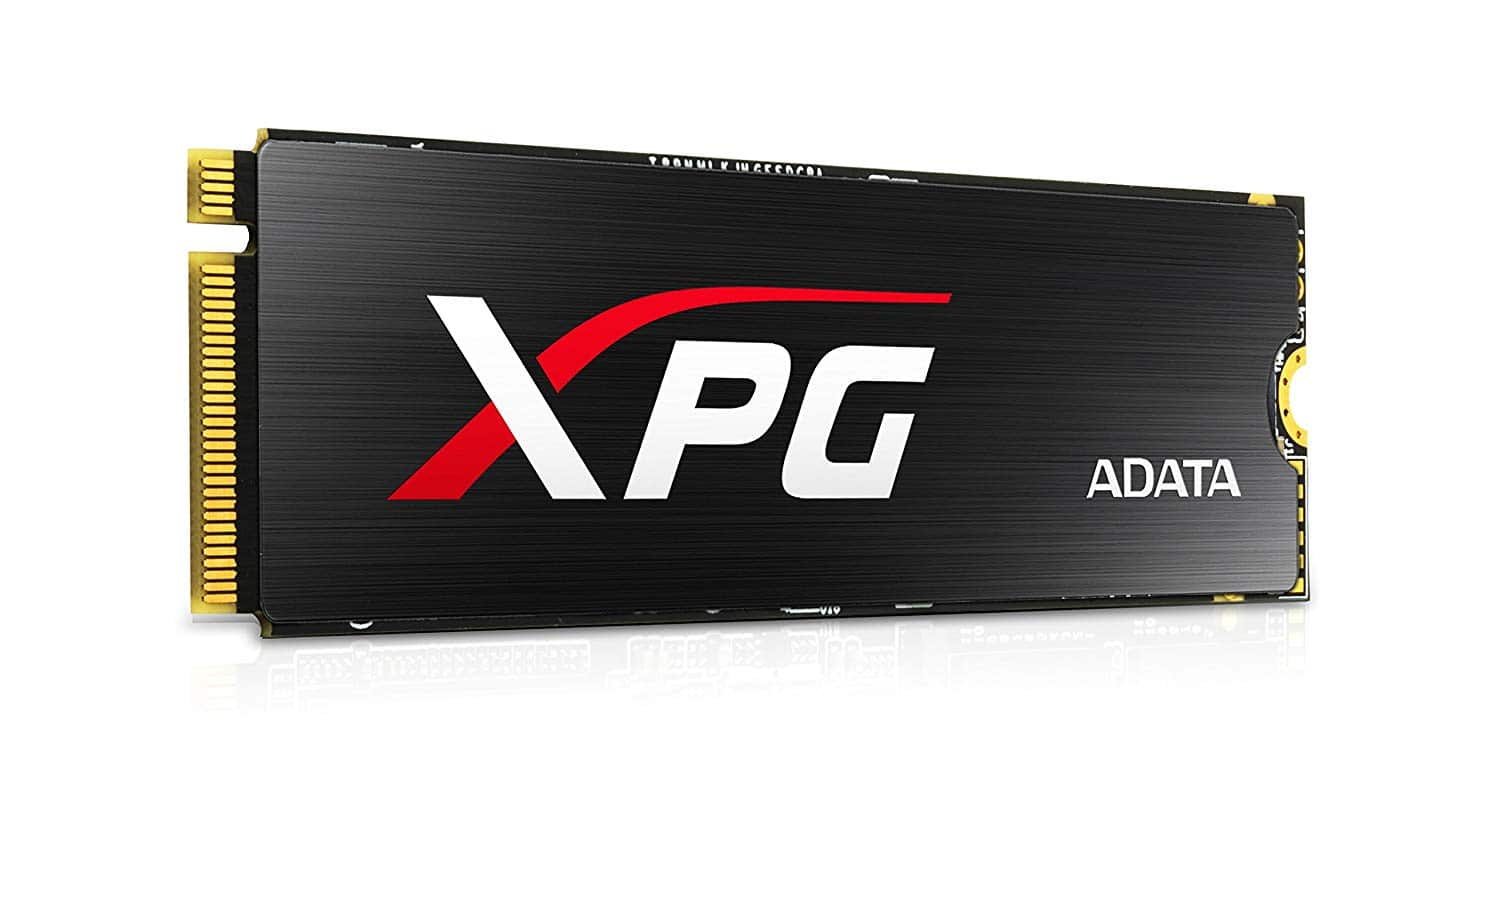 ADATA – 1TB XPG SX8200 PRO M.2 NVMe SSD, M.2 2280, PCIe, 3D NAND, R/W 3500/3000MB/s